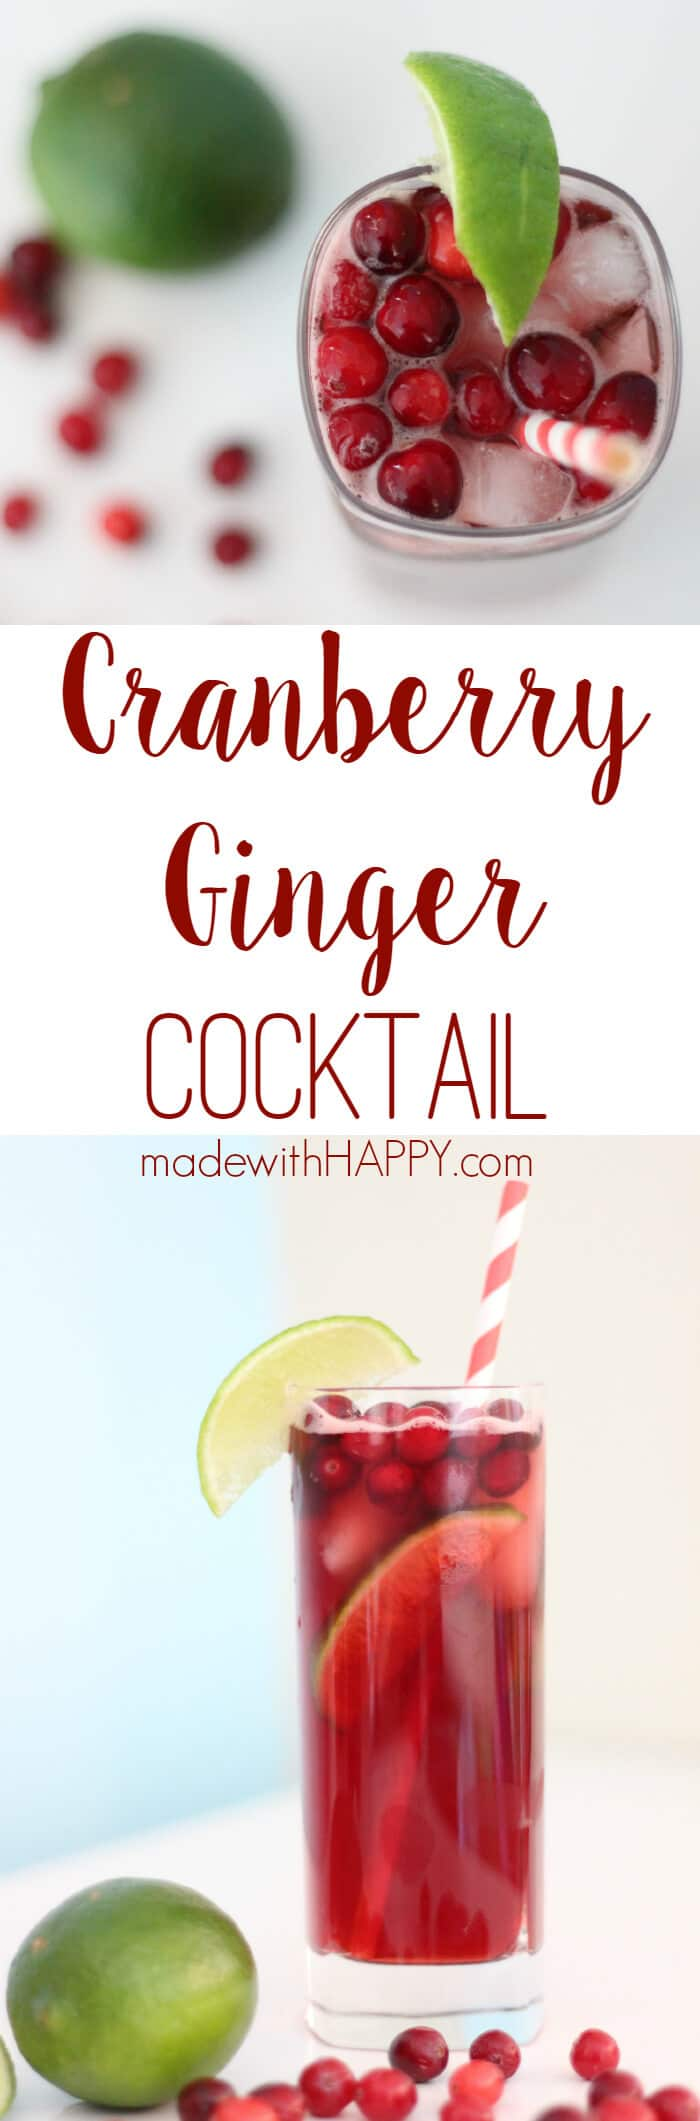 Cranberry Ginger Cocktail Recipe | Low Calorie Cranberry Ginger Cocktail | www.madewithHAPPY.com | #SweetNLowStar #client